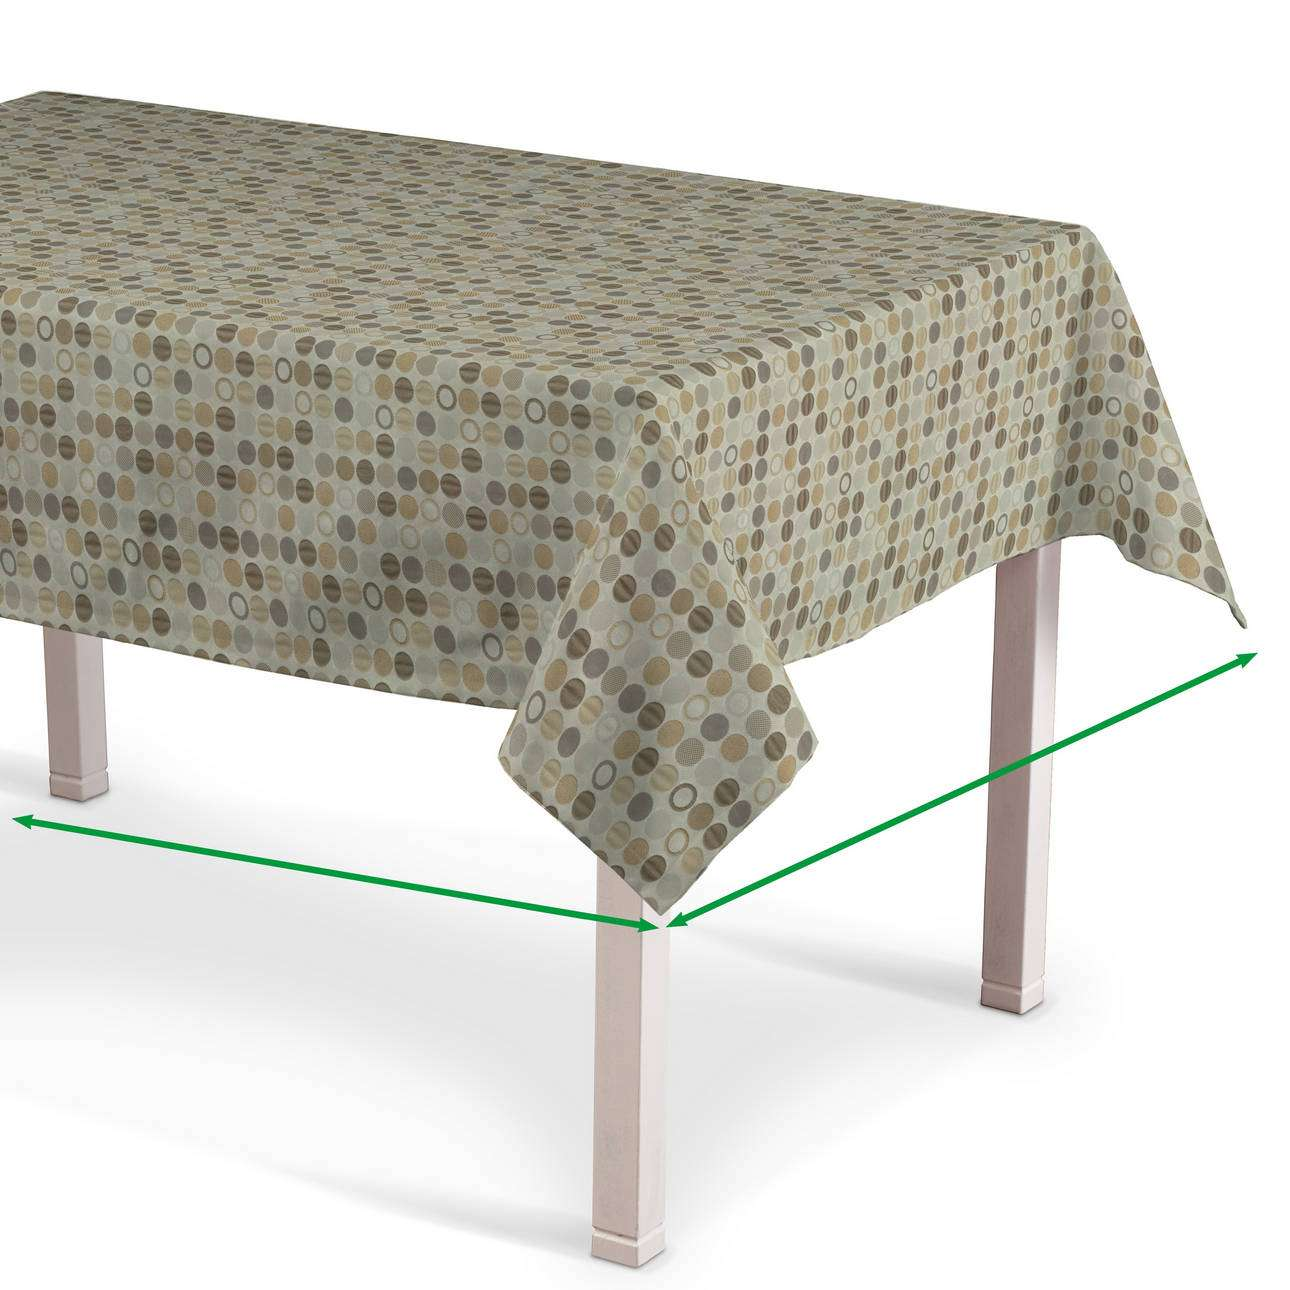 Rectangular tablecloth in collection Retro Glam, fabric: 142-81